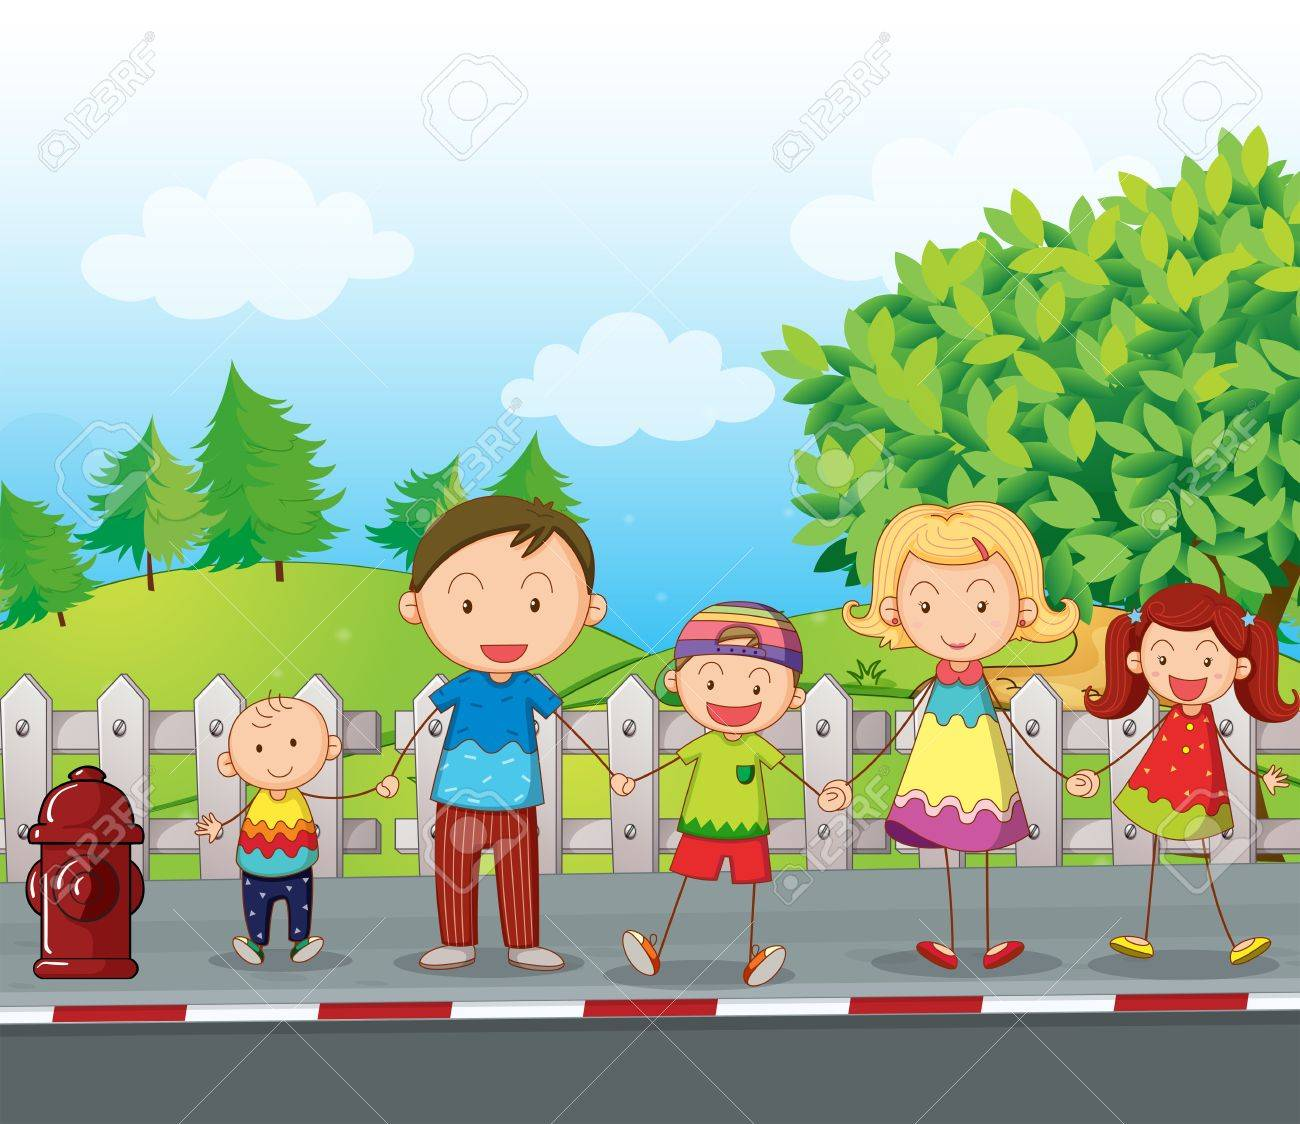 Illustration of a family along the road Stock Vector - 17895480